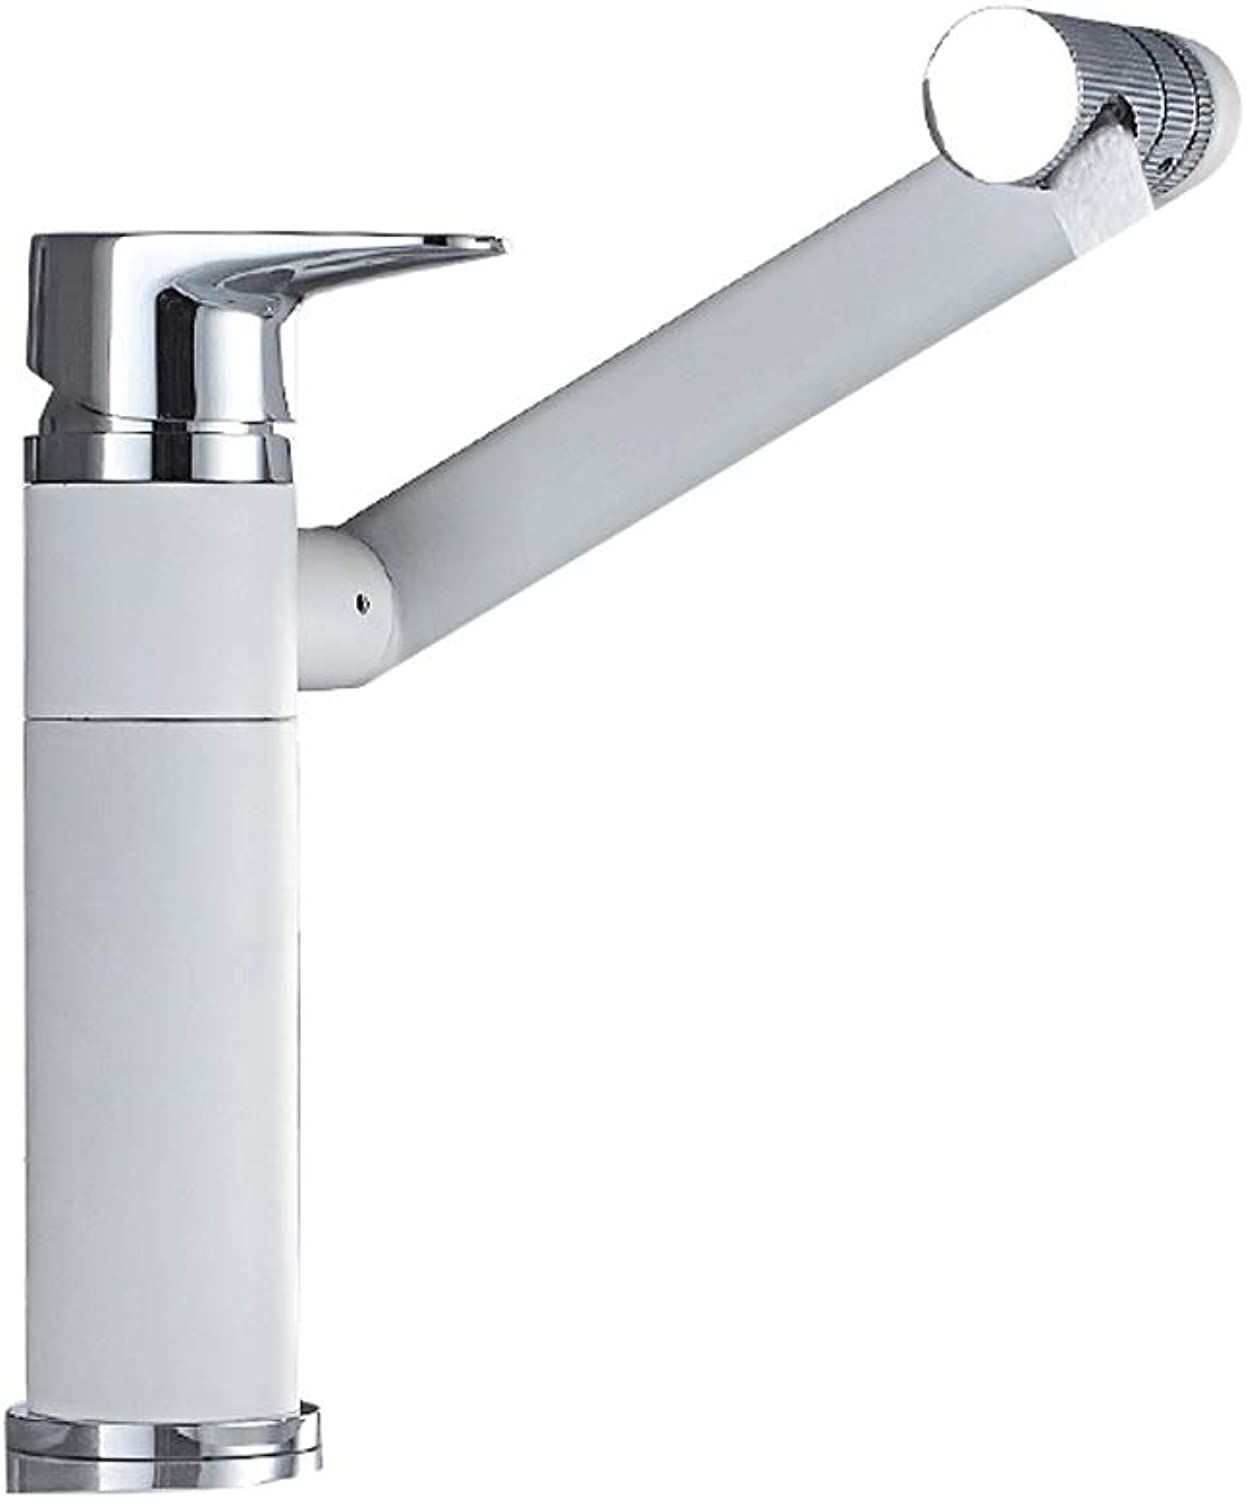 Hot And Cold Water Faucet Wash Basin Single Hole Basin Above Counter Basin Bathroom Cabinet Heightening redating Water, Hot And Cold Faucet, Ceramic Valve Core (Size   SMALL)